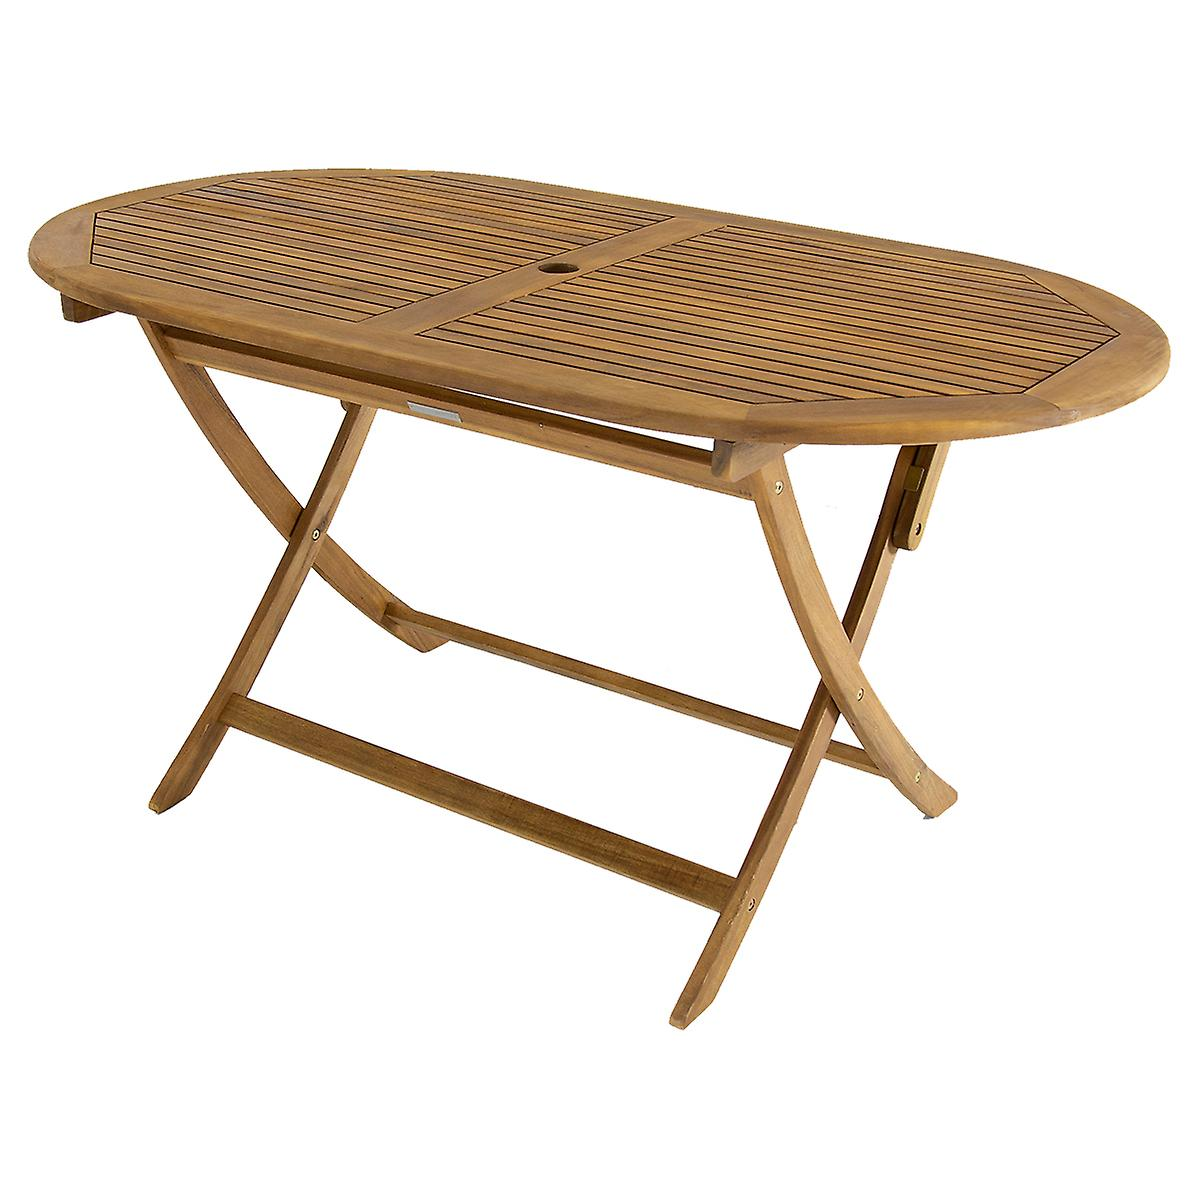 Charles Bentley Fsc Certified Acacia Wooden Furniture Oval